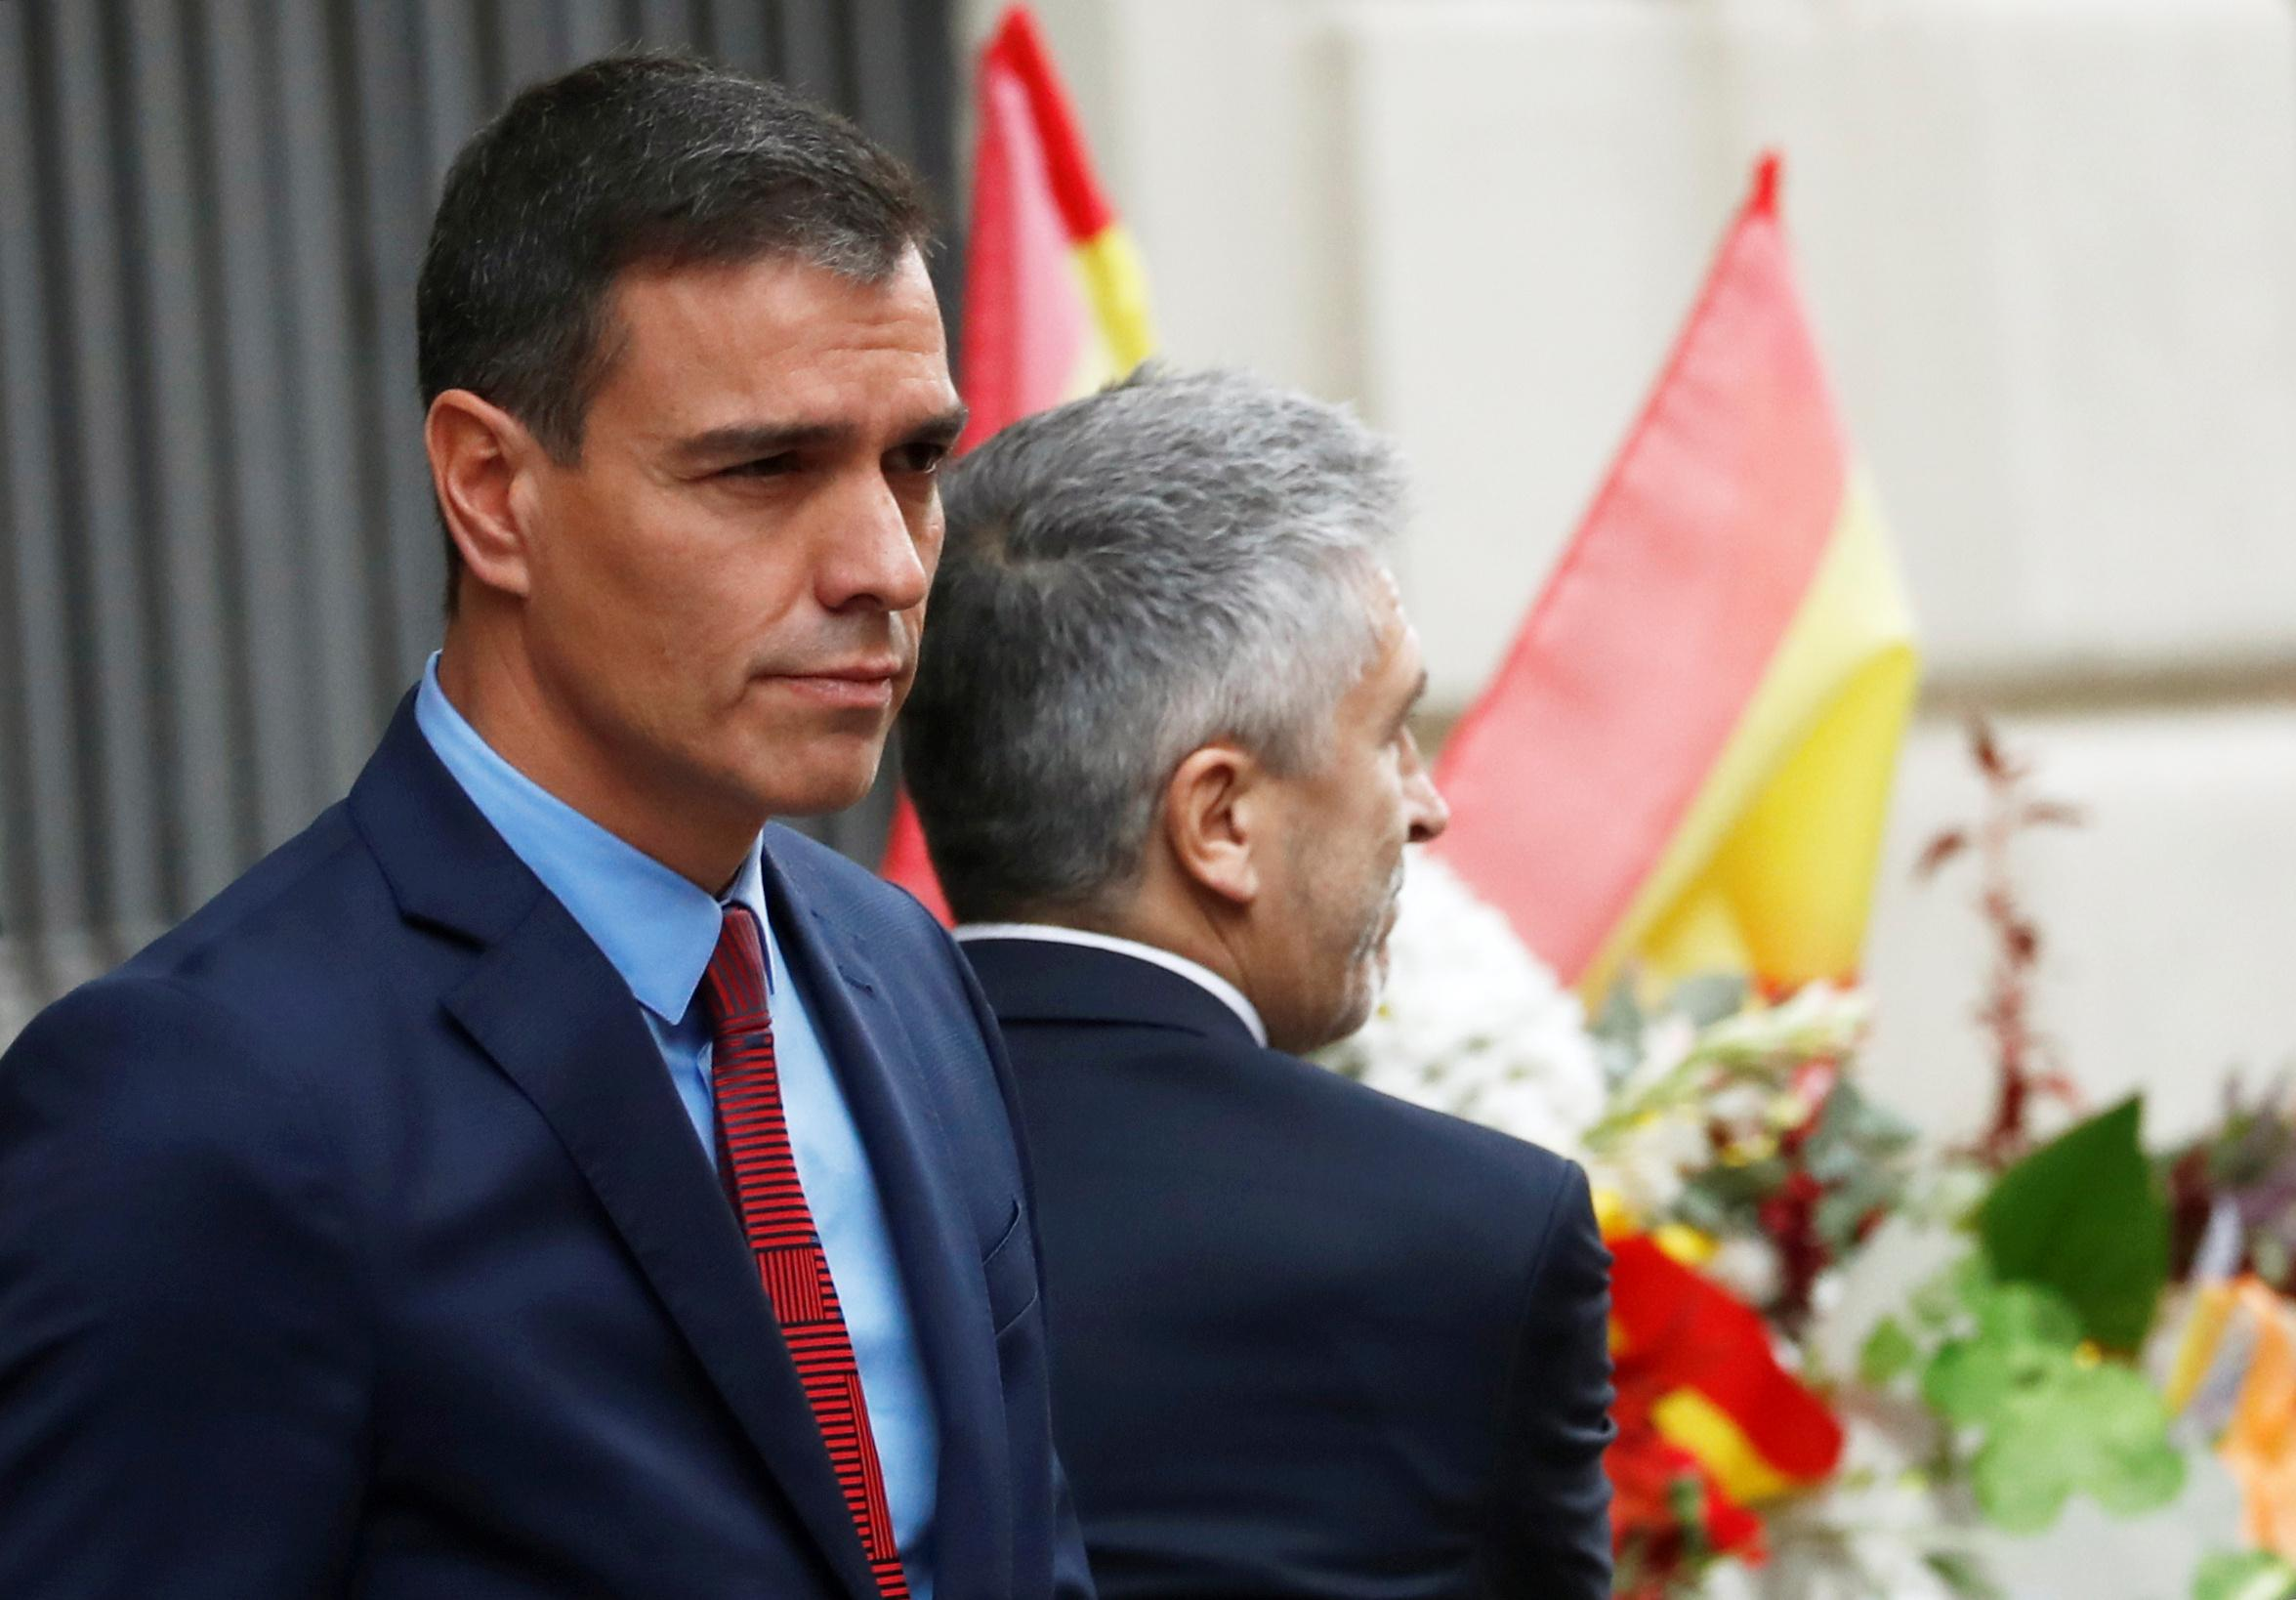 Spanish PM visits Barcelona, criticises regional chief